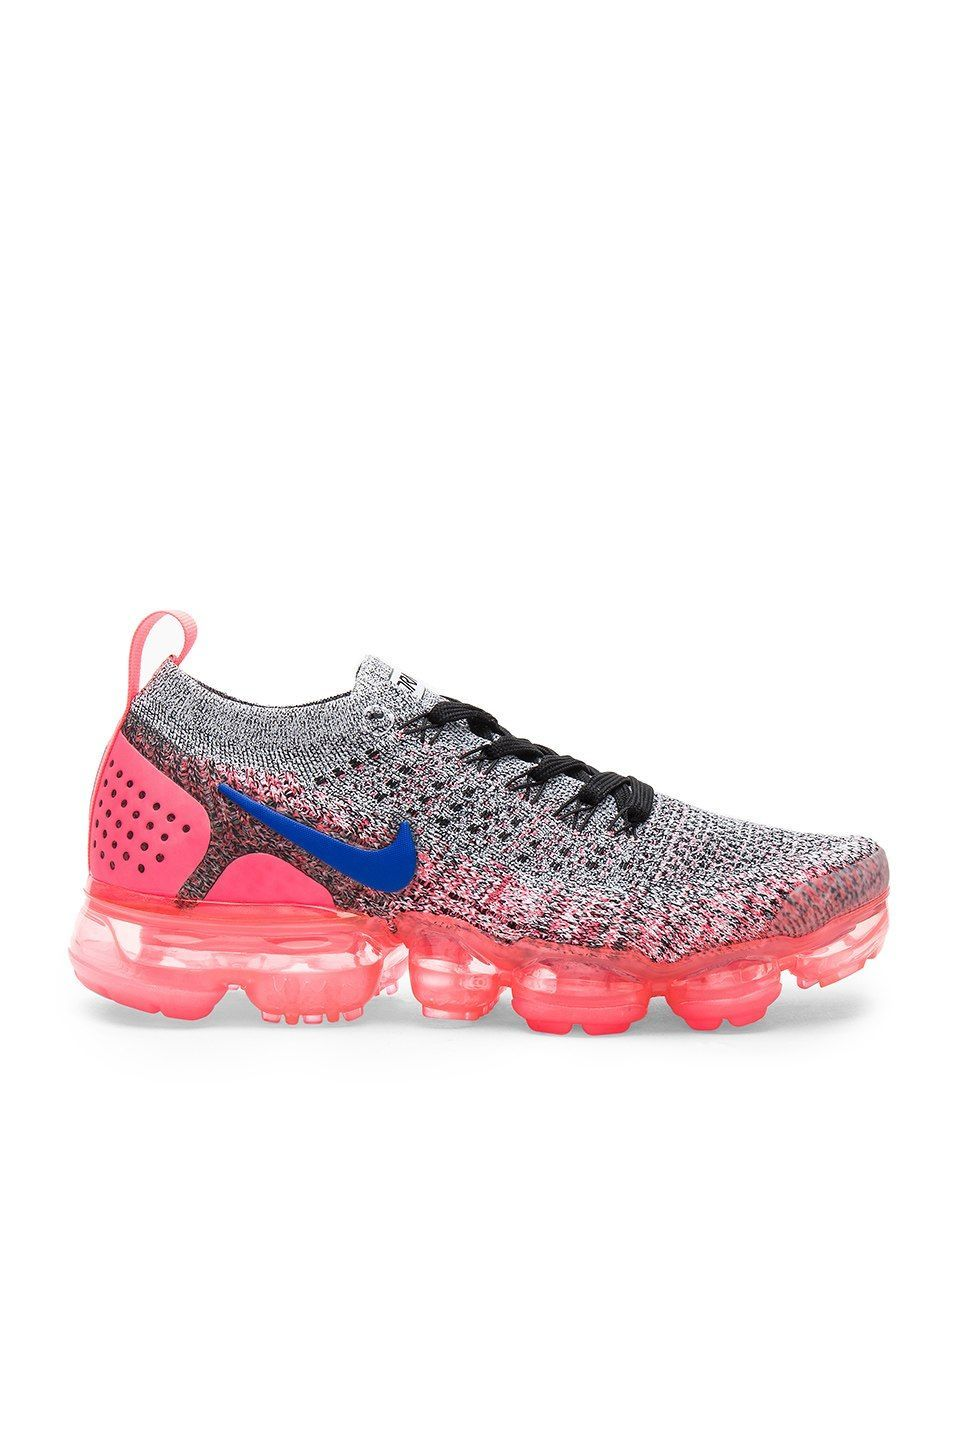 outlet store c3063 ebb86 Nike Air Vapormax Flyknit 2 Sneaker in White, Ultramarine Hot Punch    REVOLVE